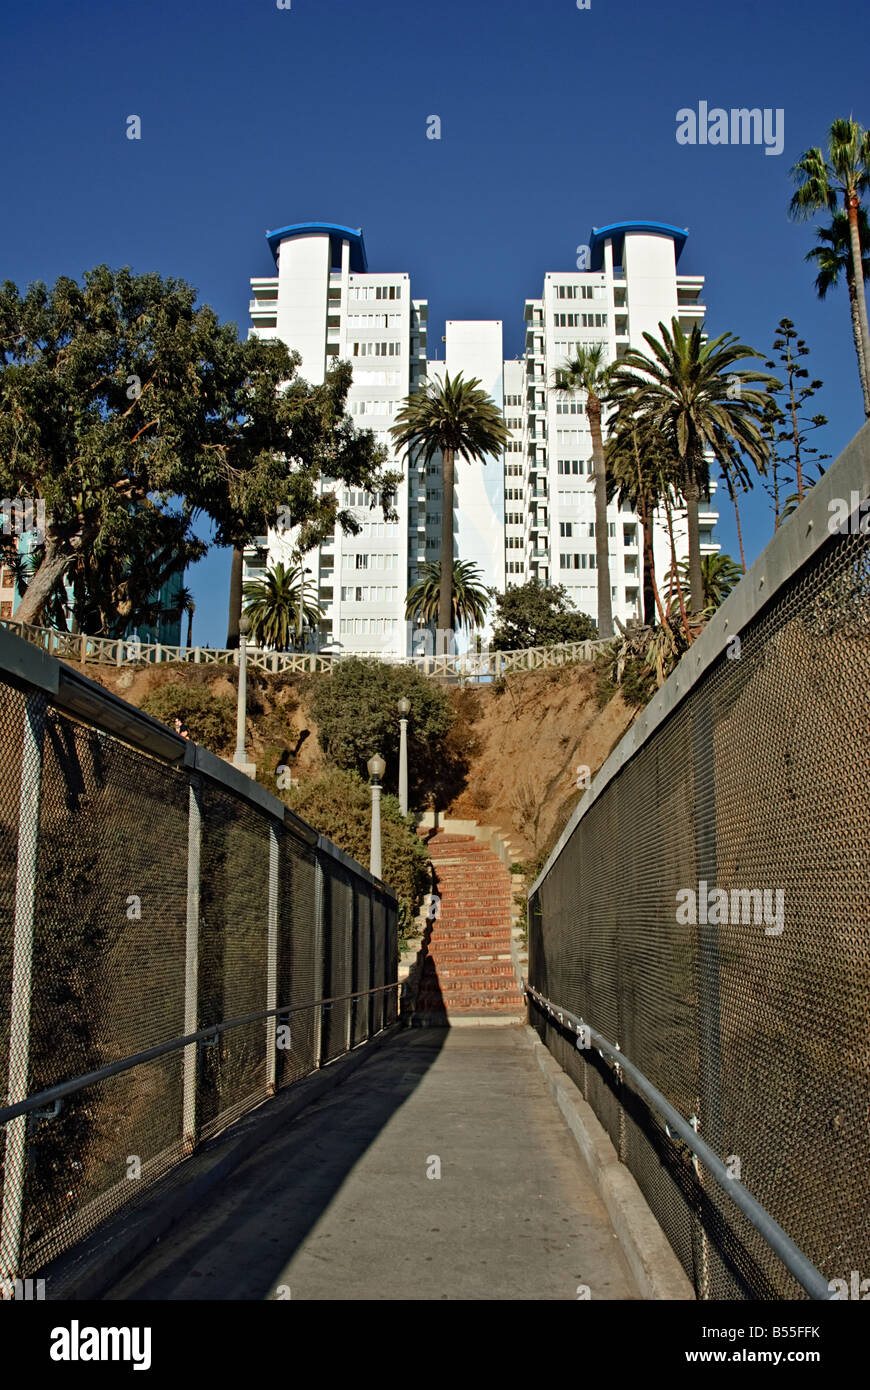 Santa Monica CA beach 'Bay City' north of the Santa Monica Pier stairway to Palisades Park or 'the palisades,' - Stock Image